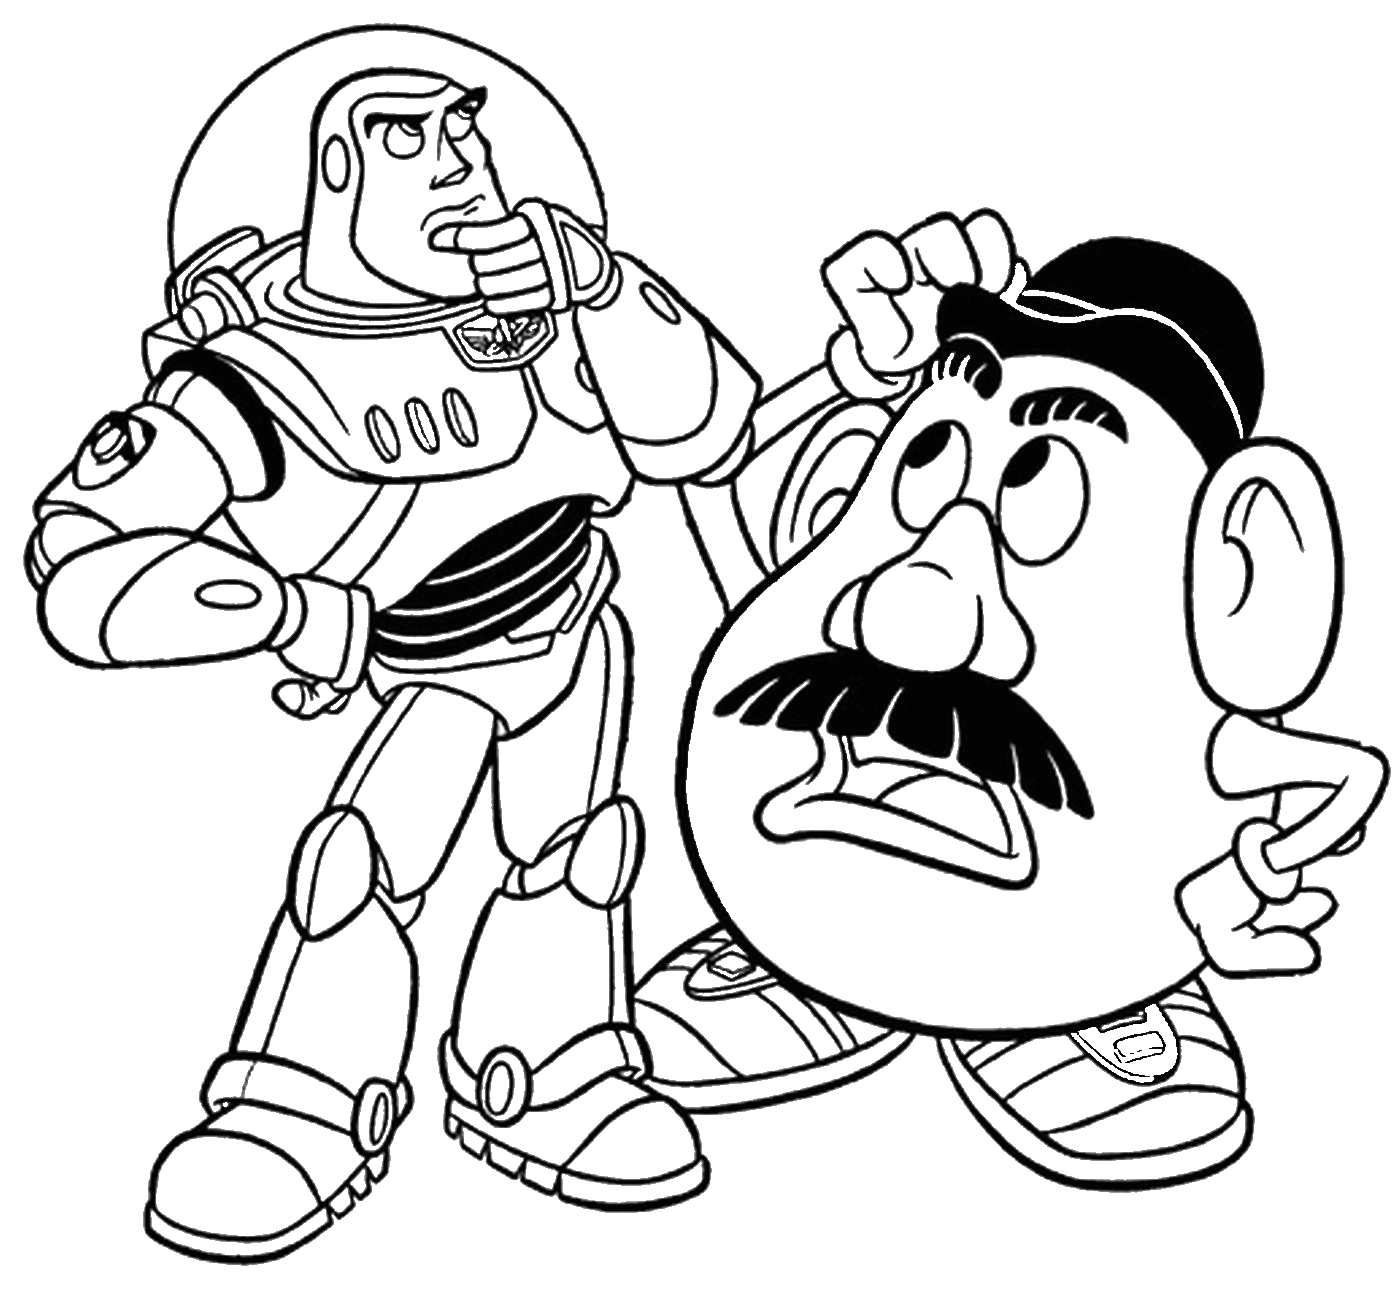 Toy Story Coloring Pages Free to Print toy Story Coloring Pages